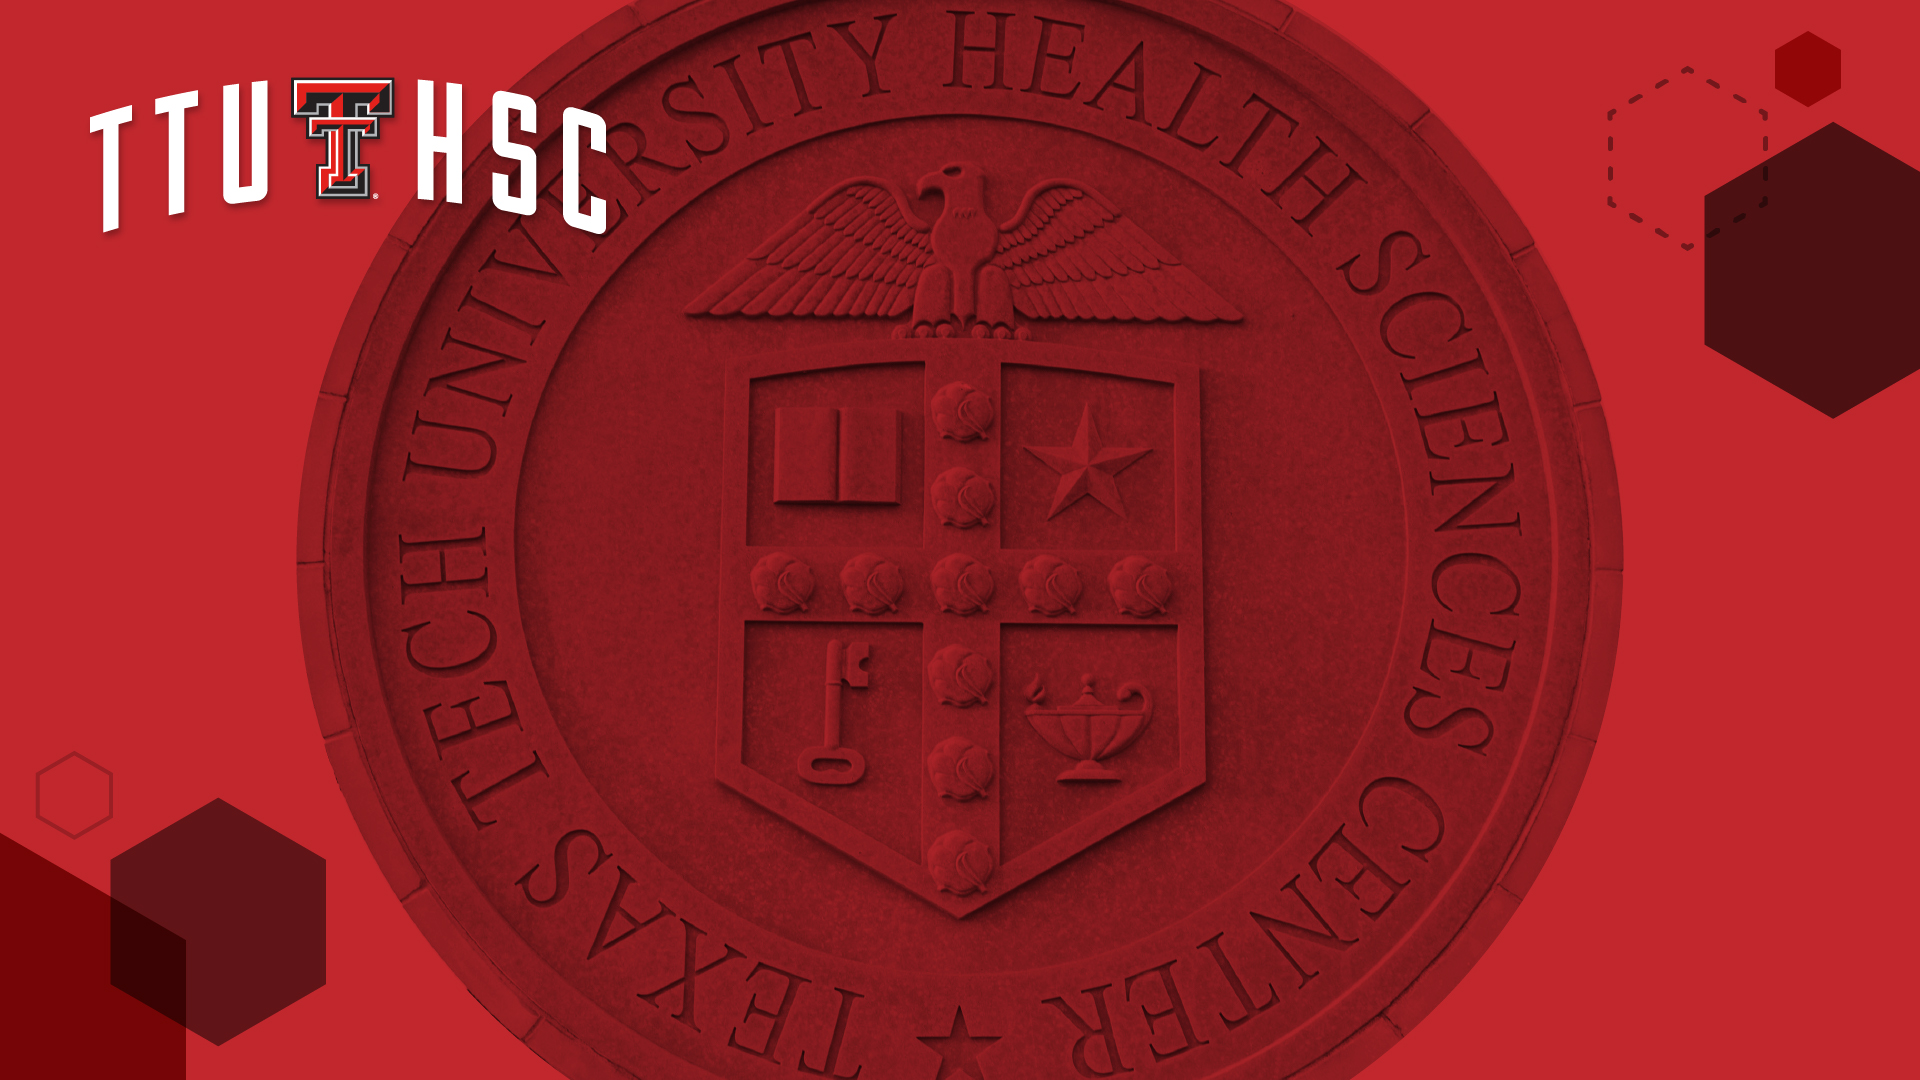 TTUHSC Zoom Background Preview